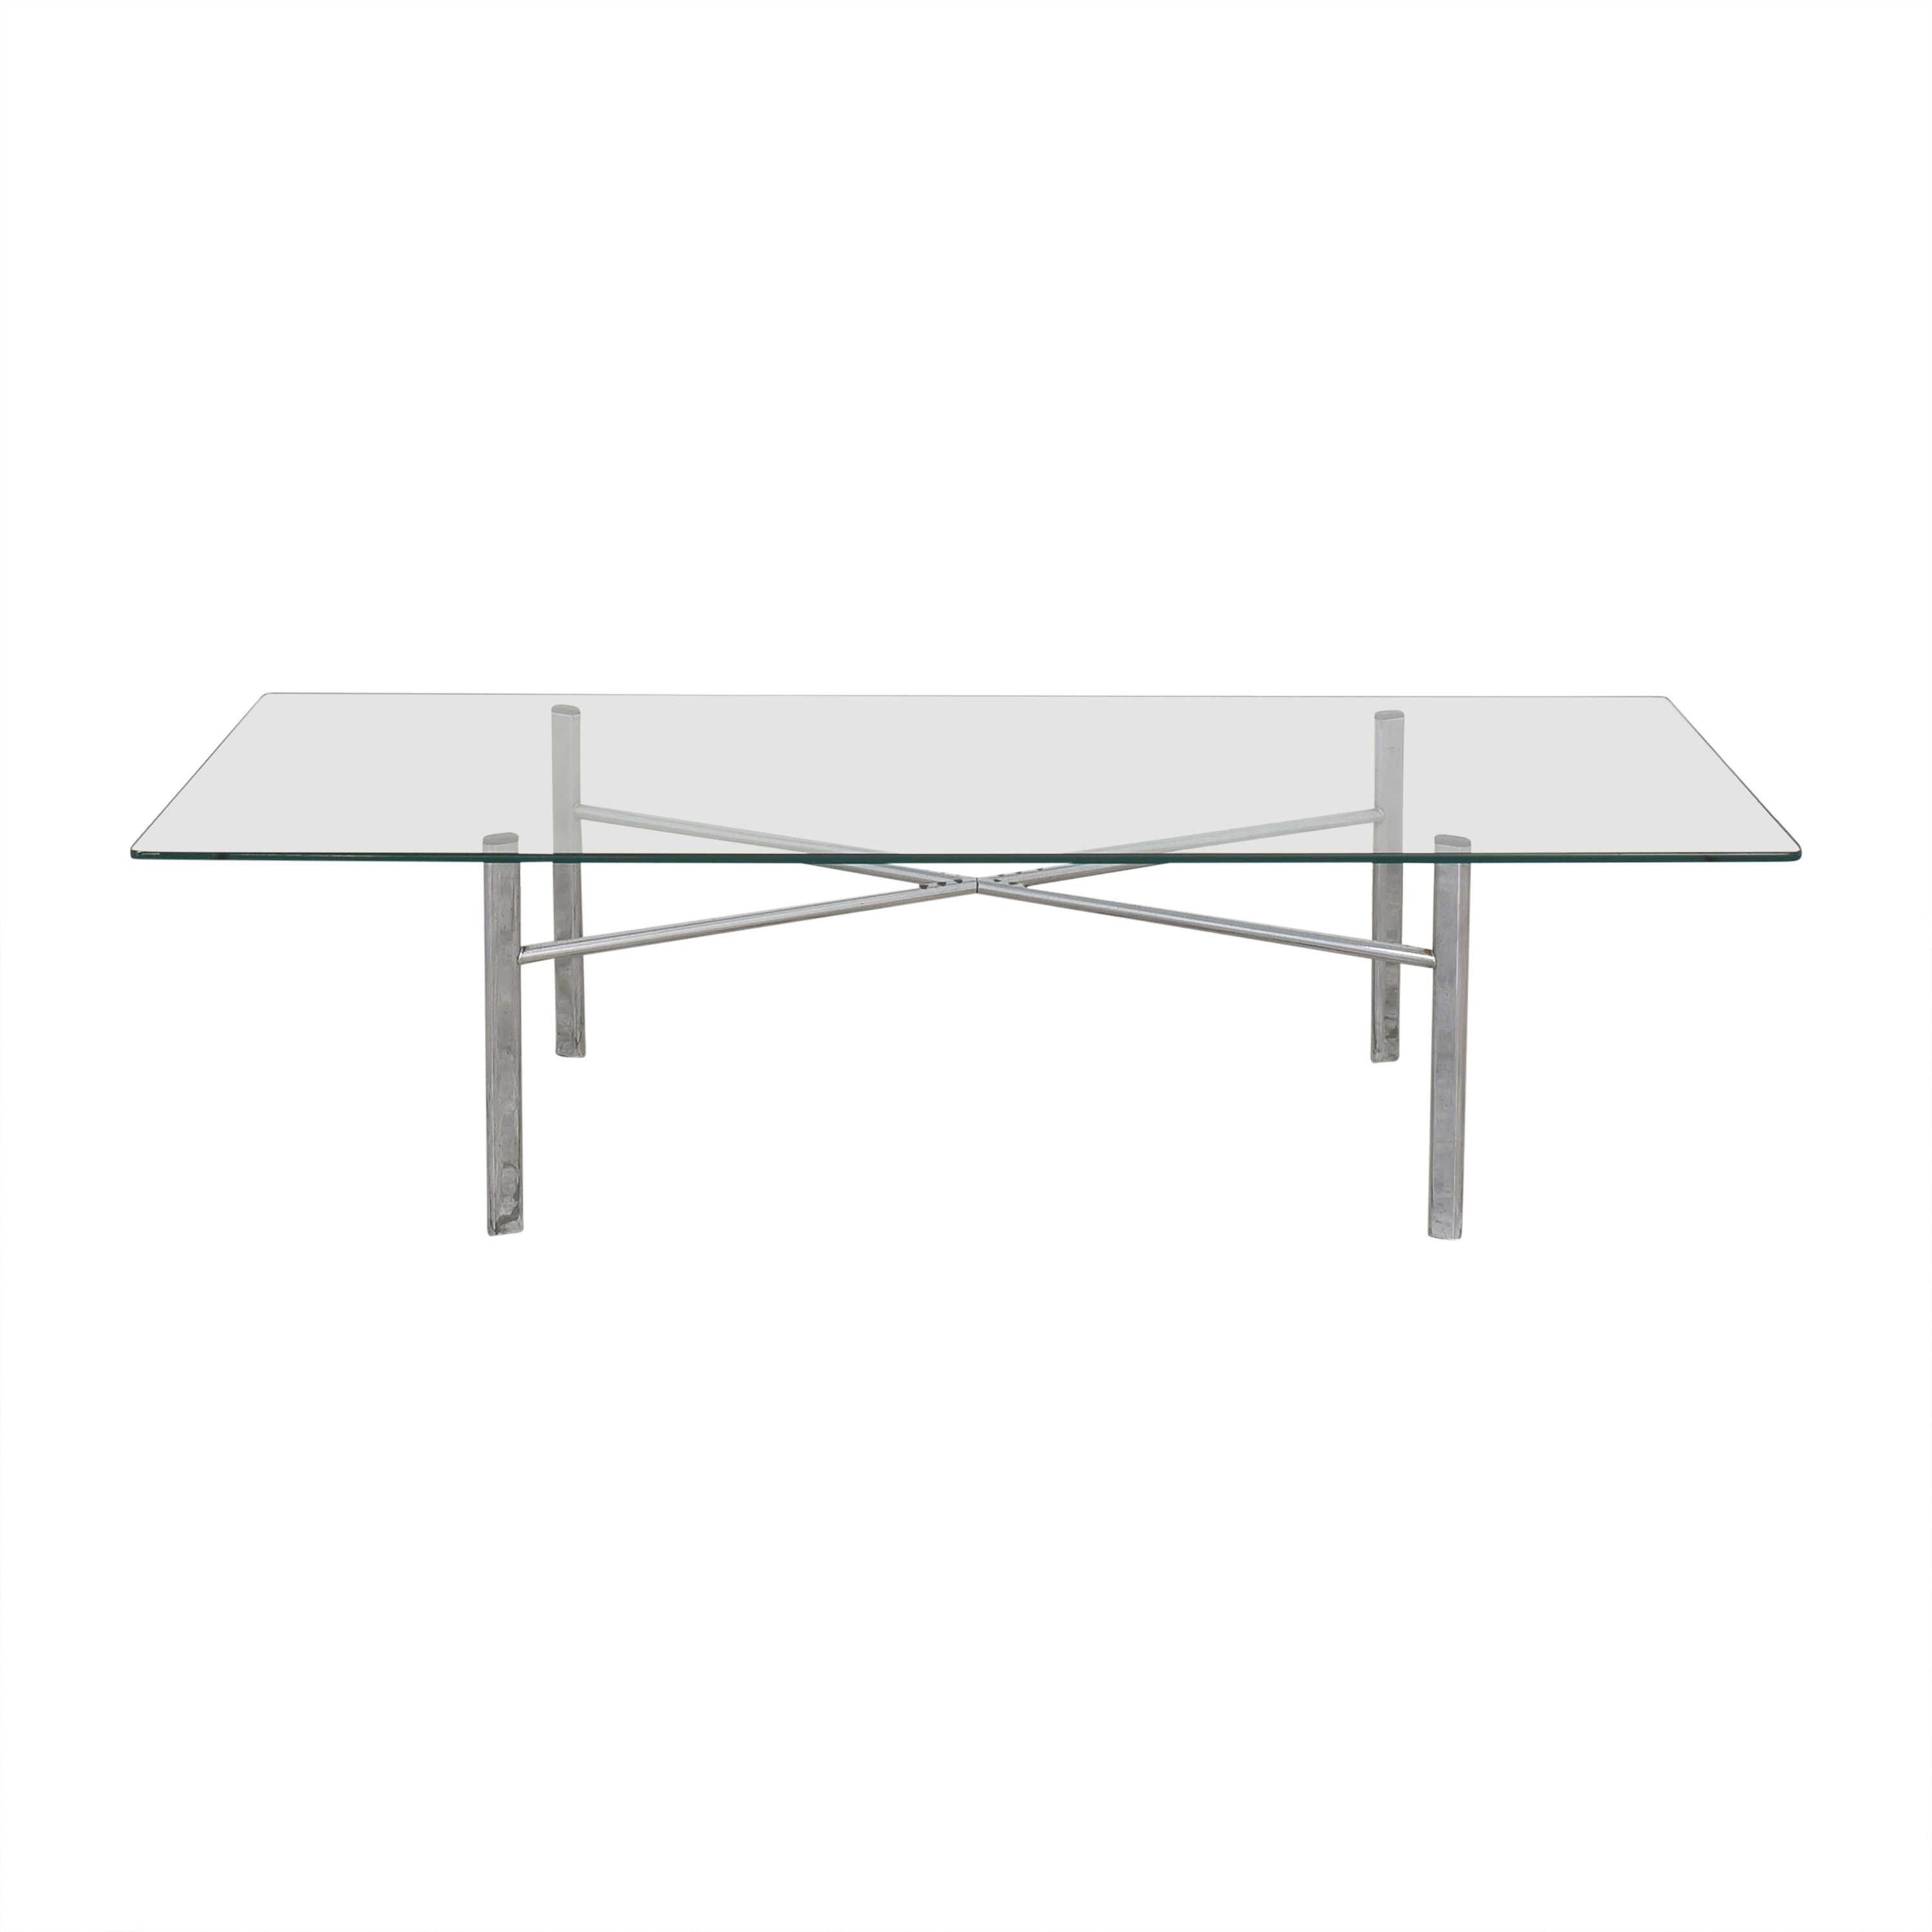 Custom Modern Coffee Table with Transparent Surface / Coffee Tables